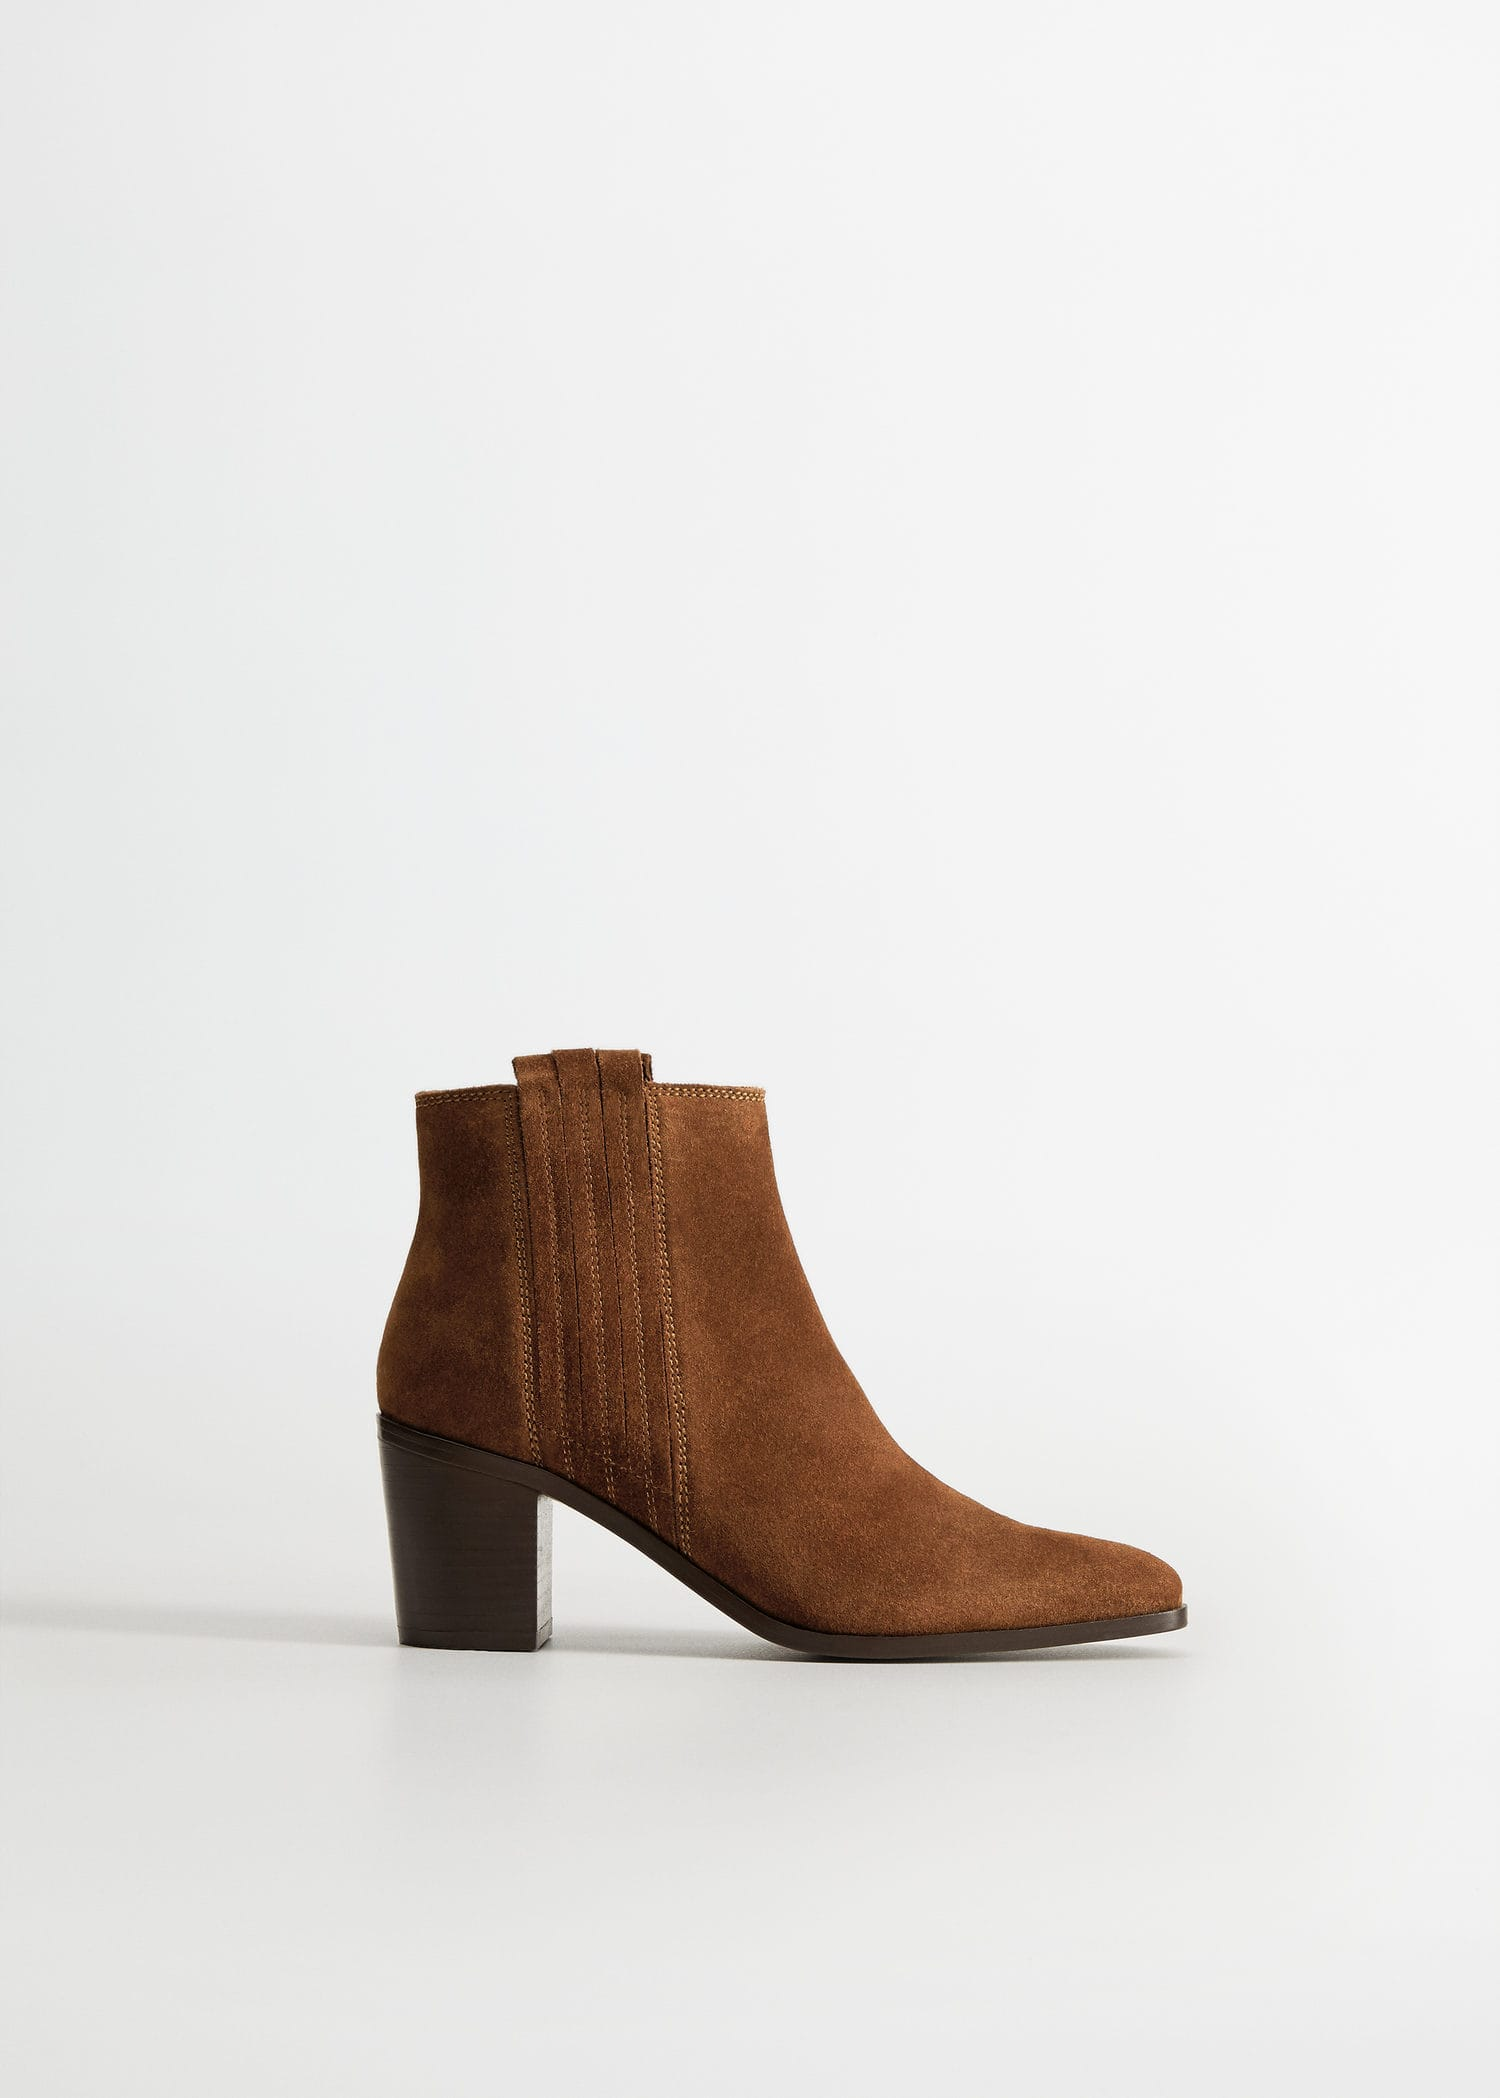 Leather western ankle boots - Women